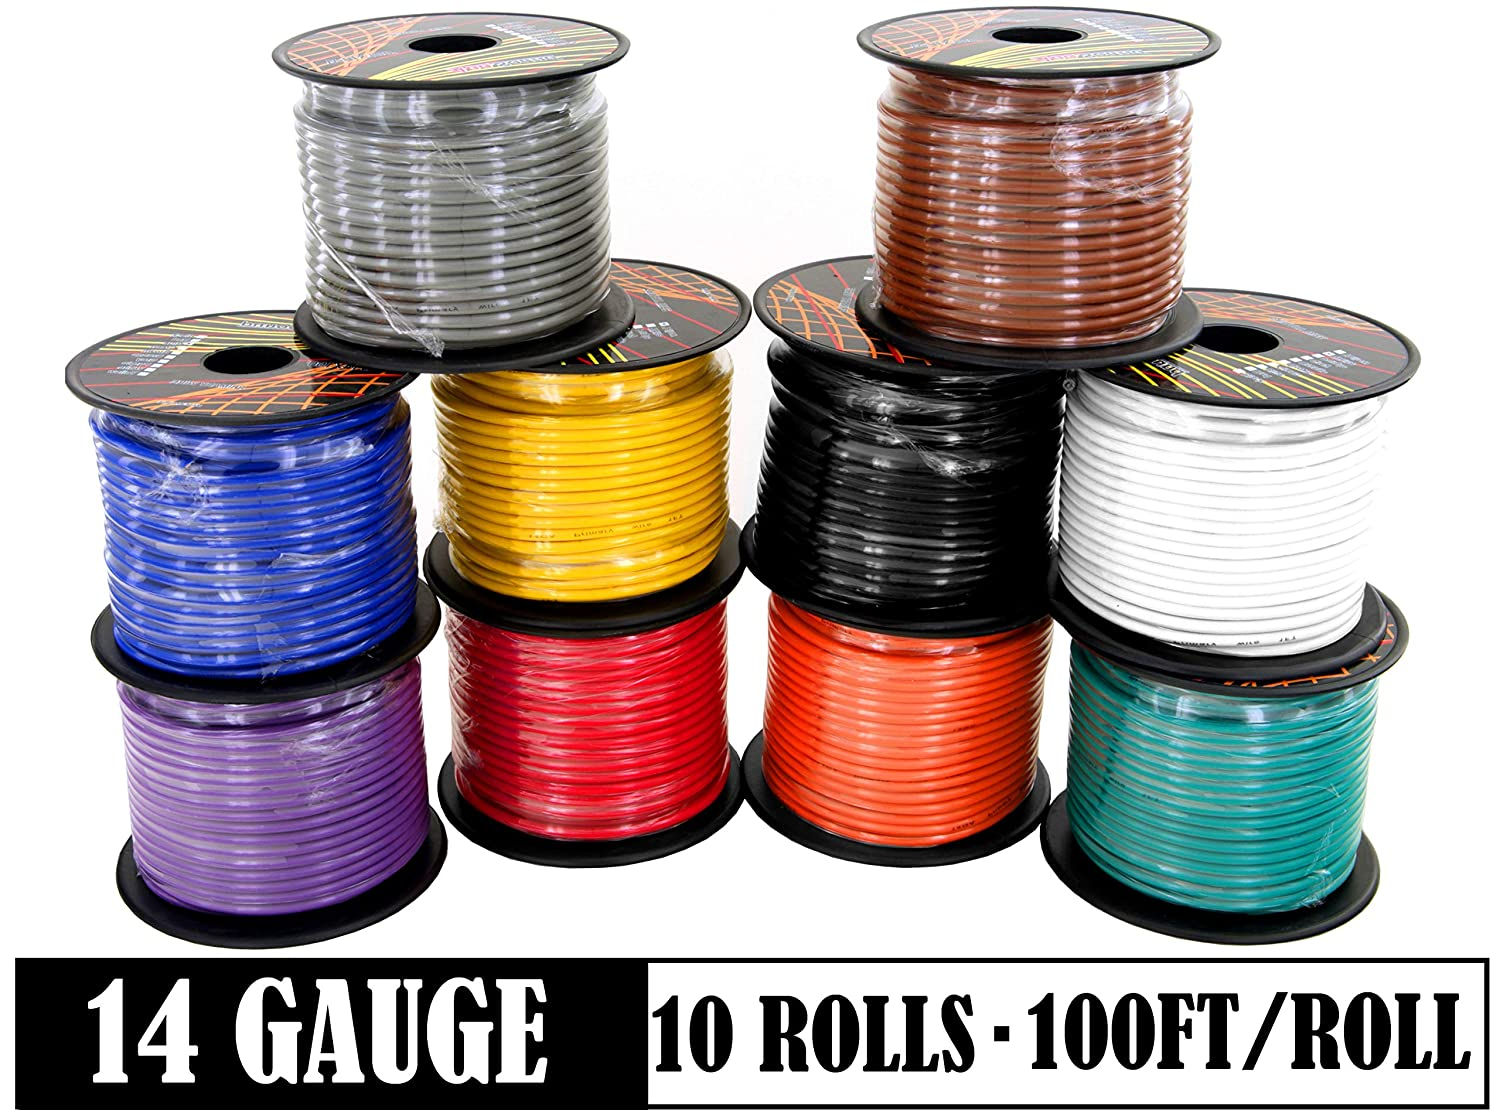 14 Gauge Copper Clad Aluminum Low Voltage Primary Wire in 10 Color Pack, 100 feet Roll (1000 feet Total) for 12V Automotive Harness Car Video Stereo Wiring. Also in 4 Color Set 81AEUh5b2BIL